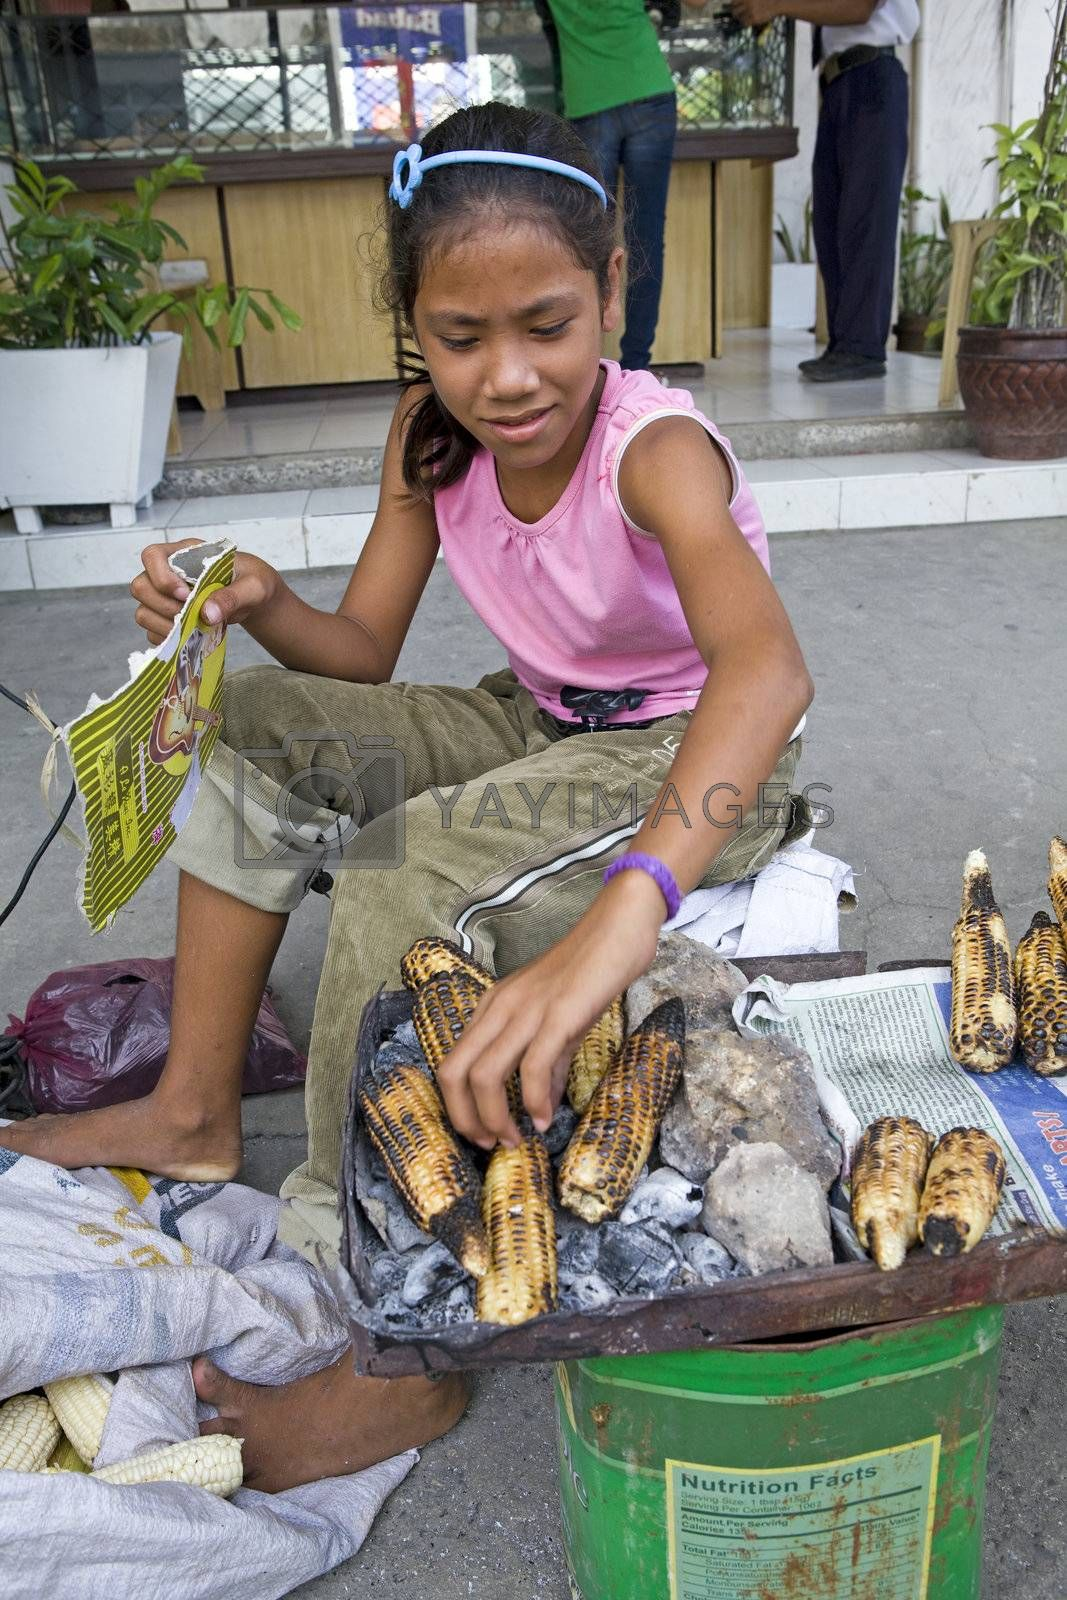 May 2012 - Bogo City, Cebu Island, Philippines - A beautiful twelve year old girl helps her mother earn money by roasting ears of corn over a charcoal fire to sell on the side of the road in Bogo City, Philippines.